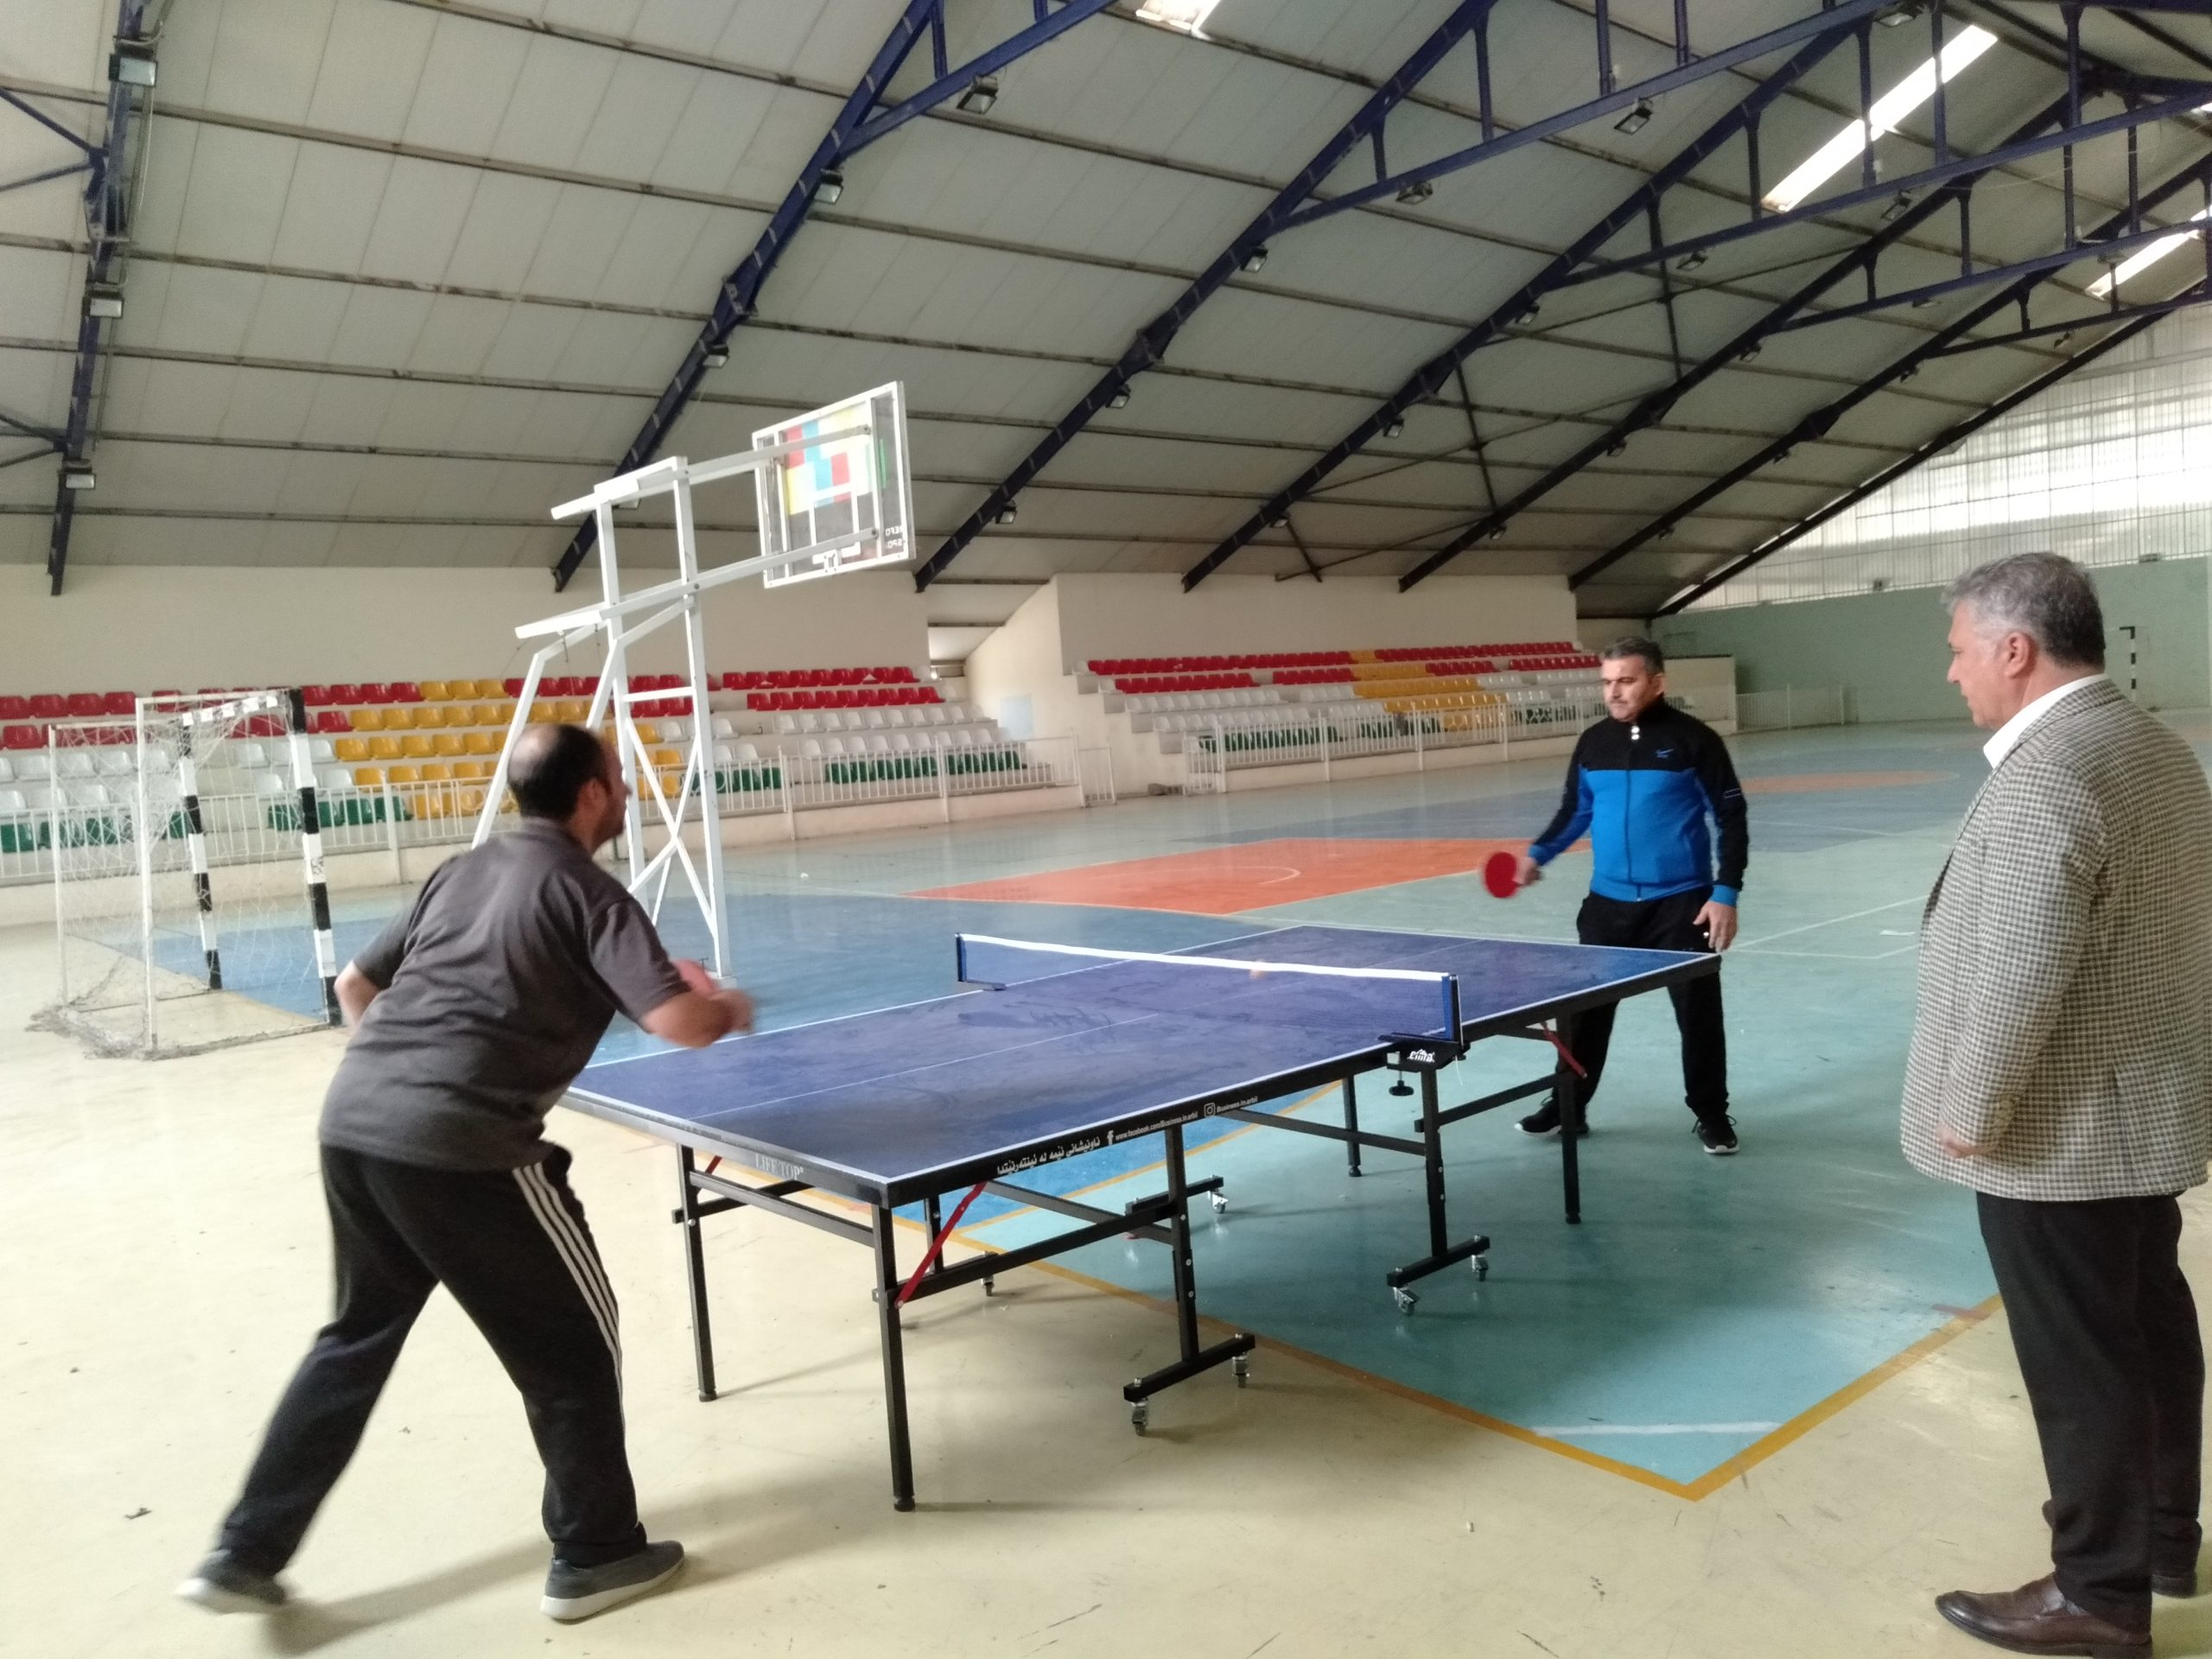 The final matches of the League of Teachers and Staff table Tennis